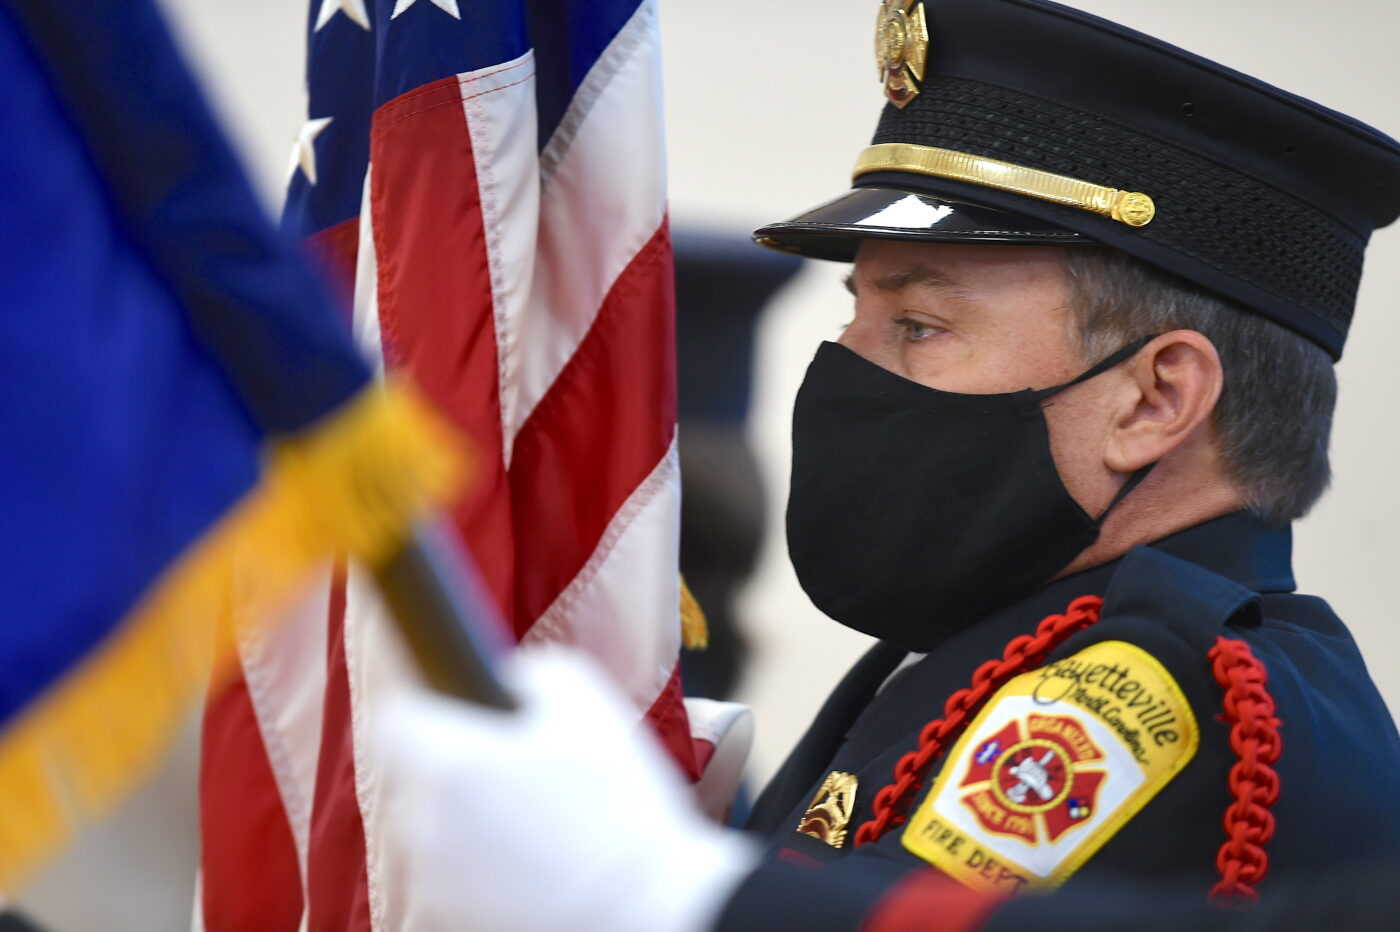 Firefighter with flag